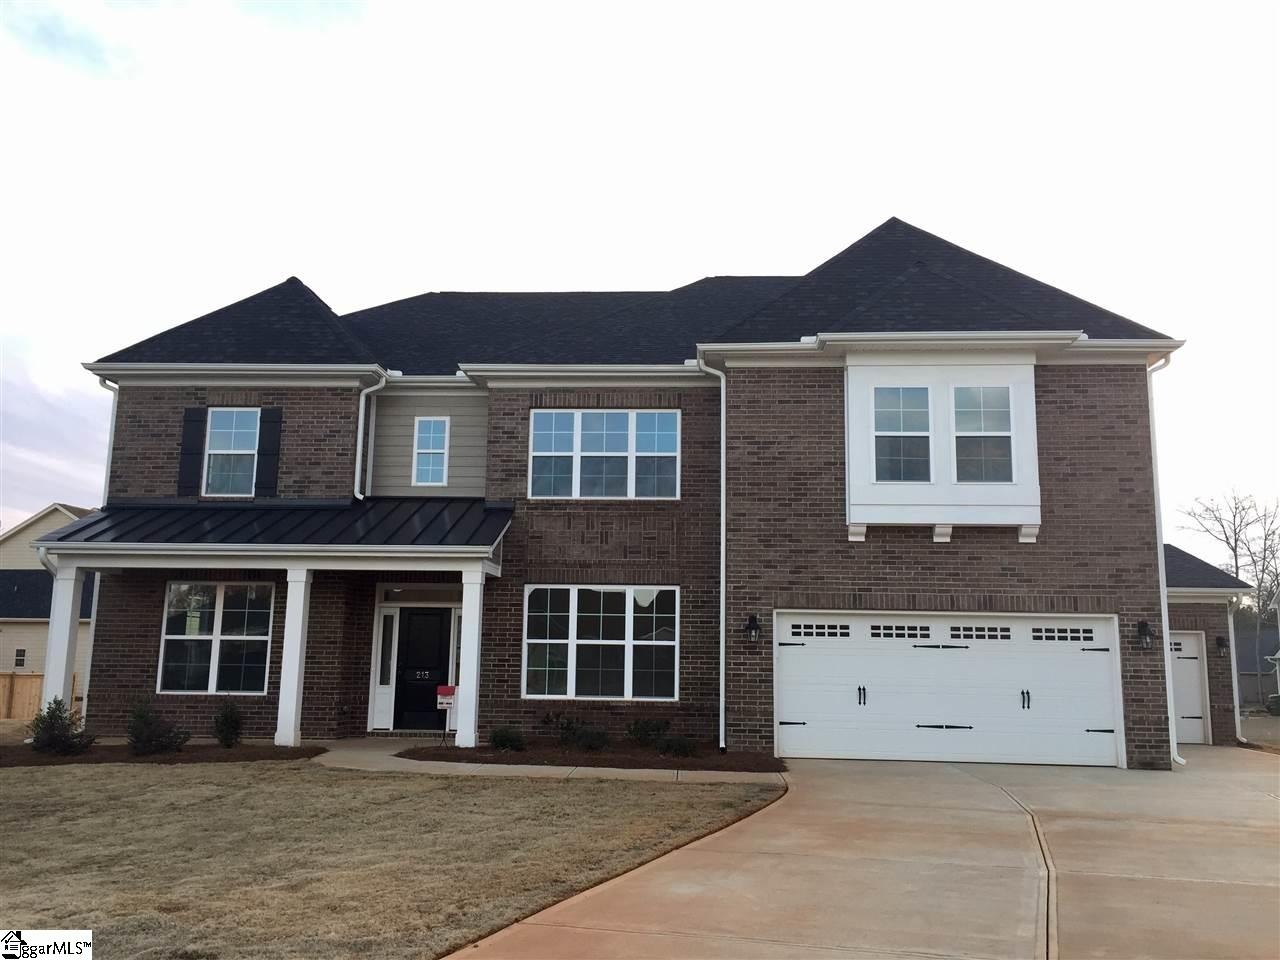 213 Hereford Way, Fountain Inn, SC 29644